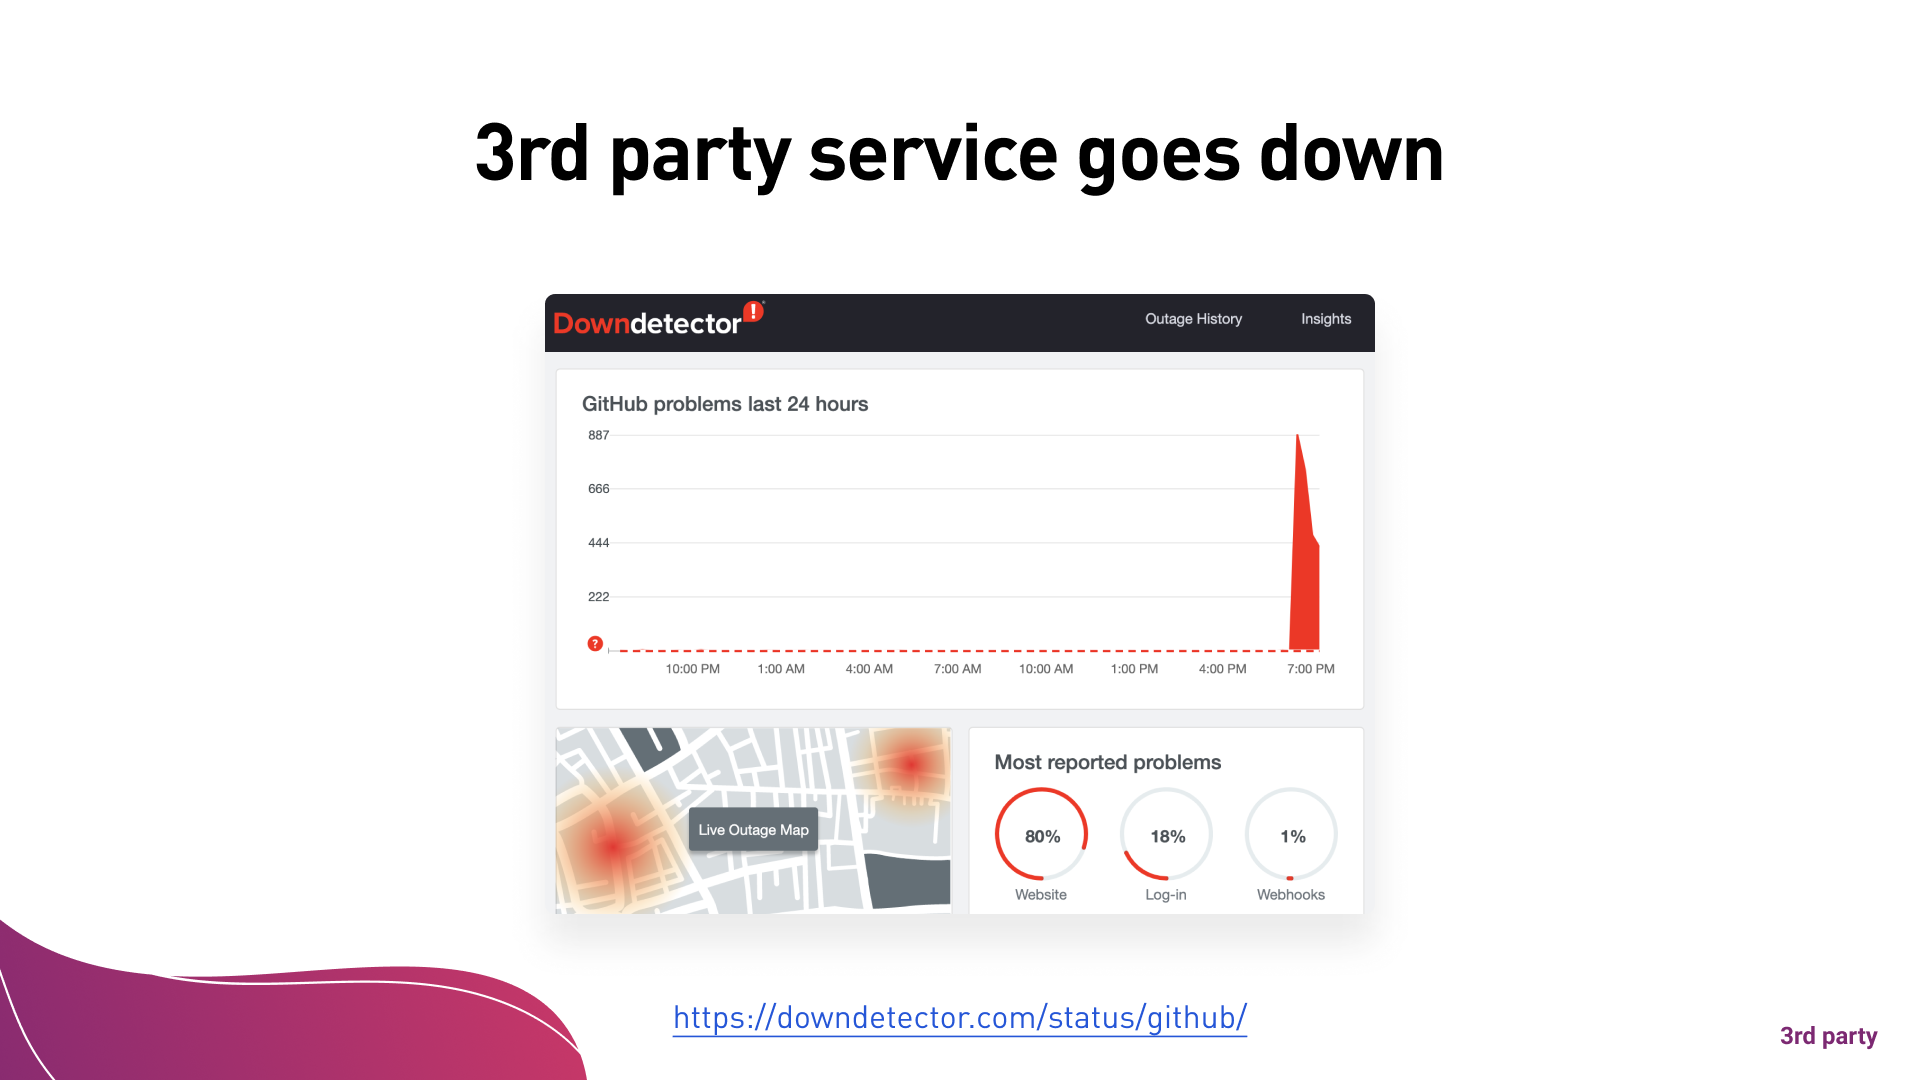 3rd party service goes down